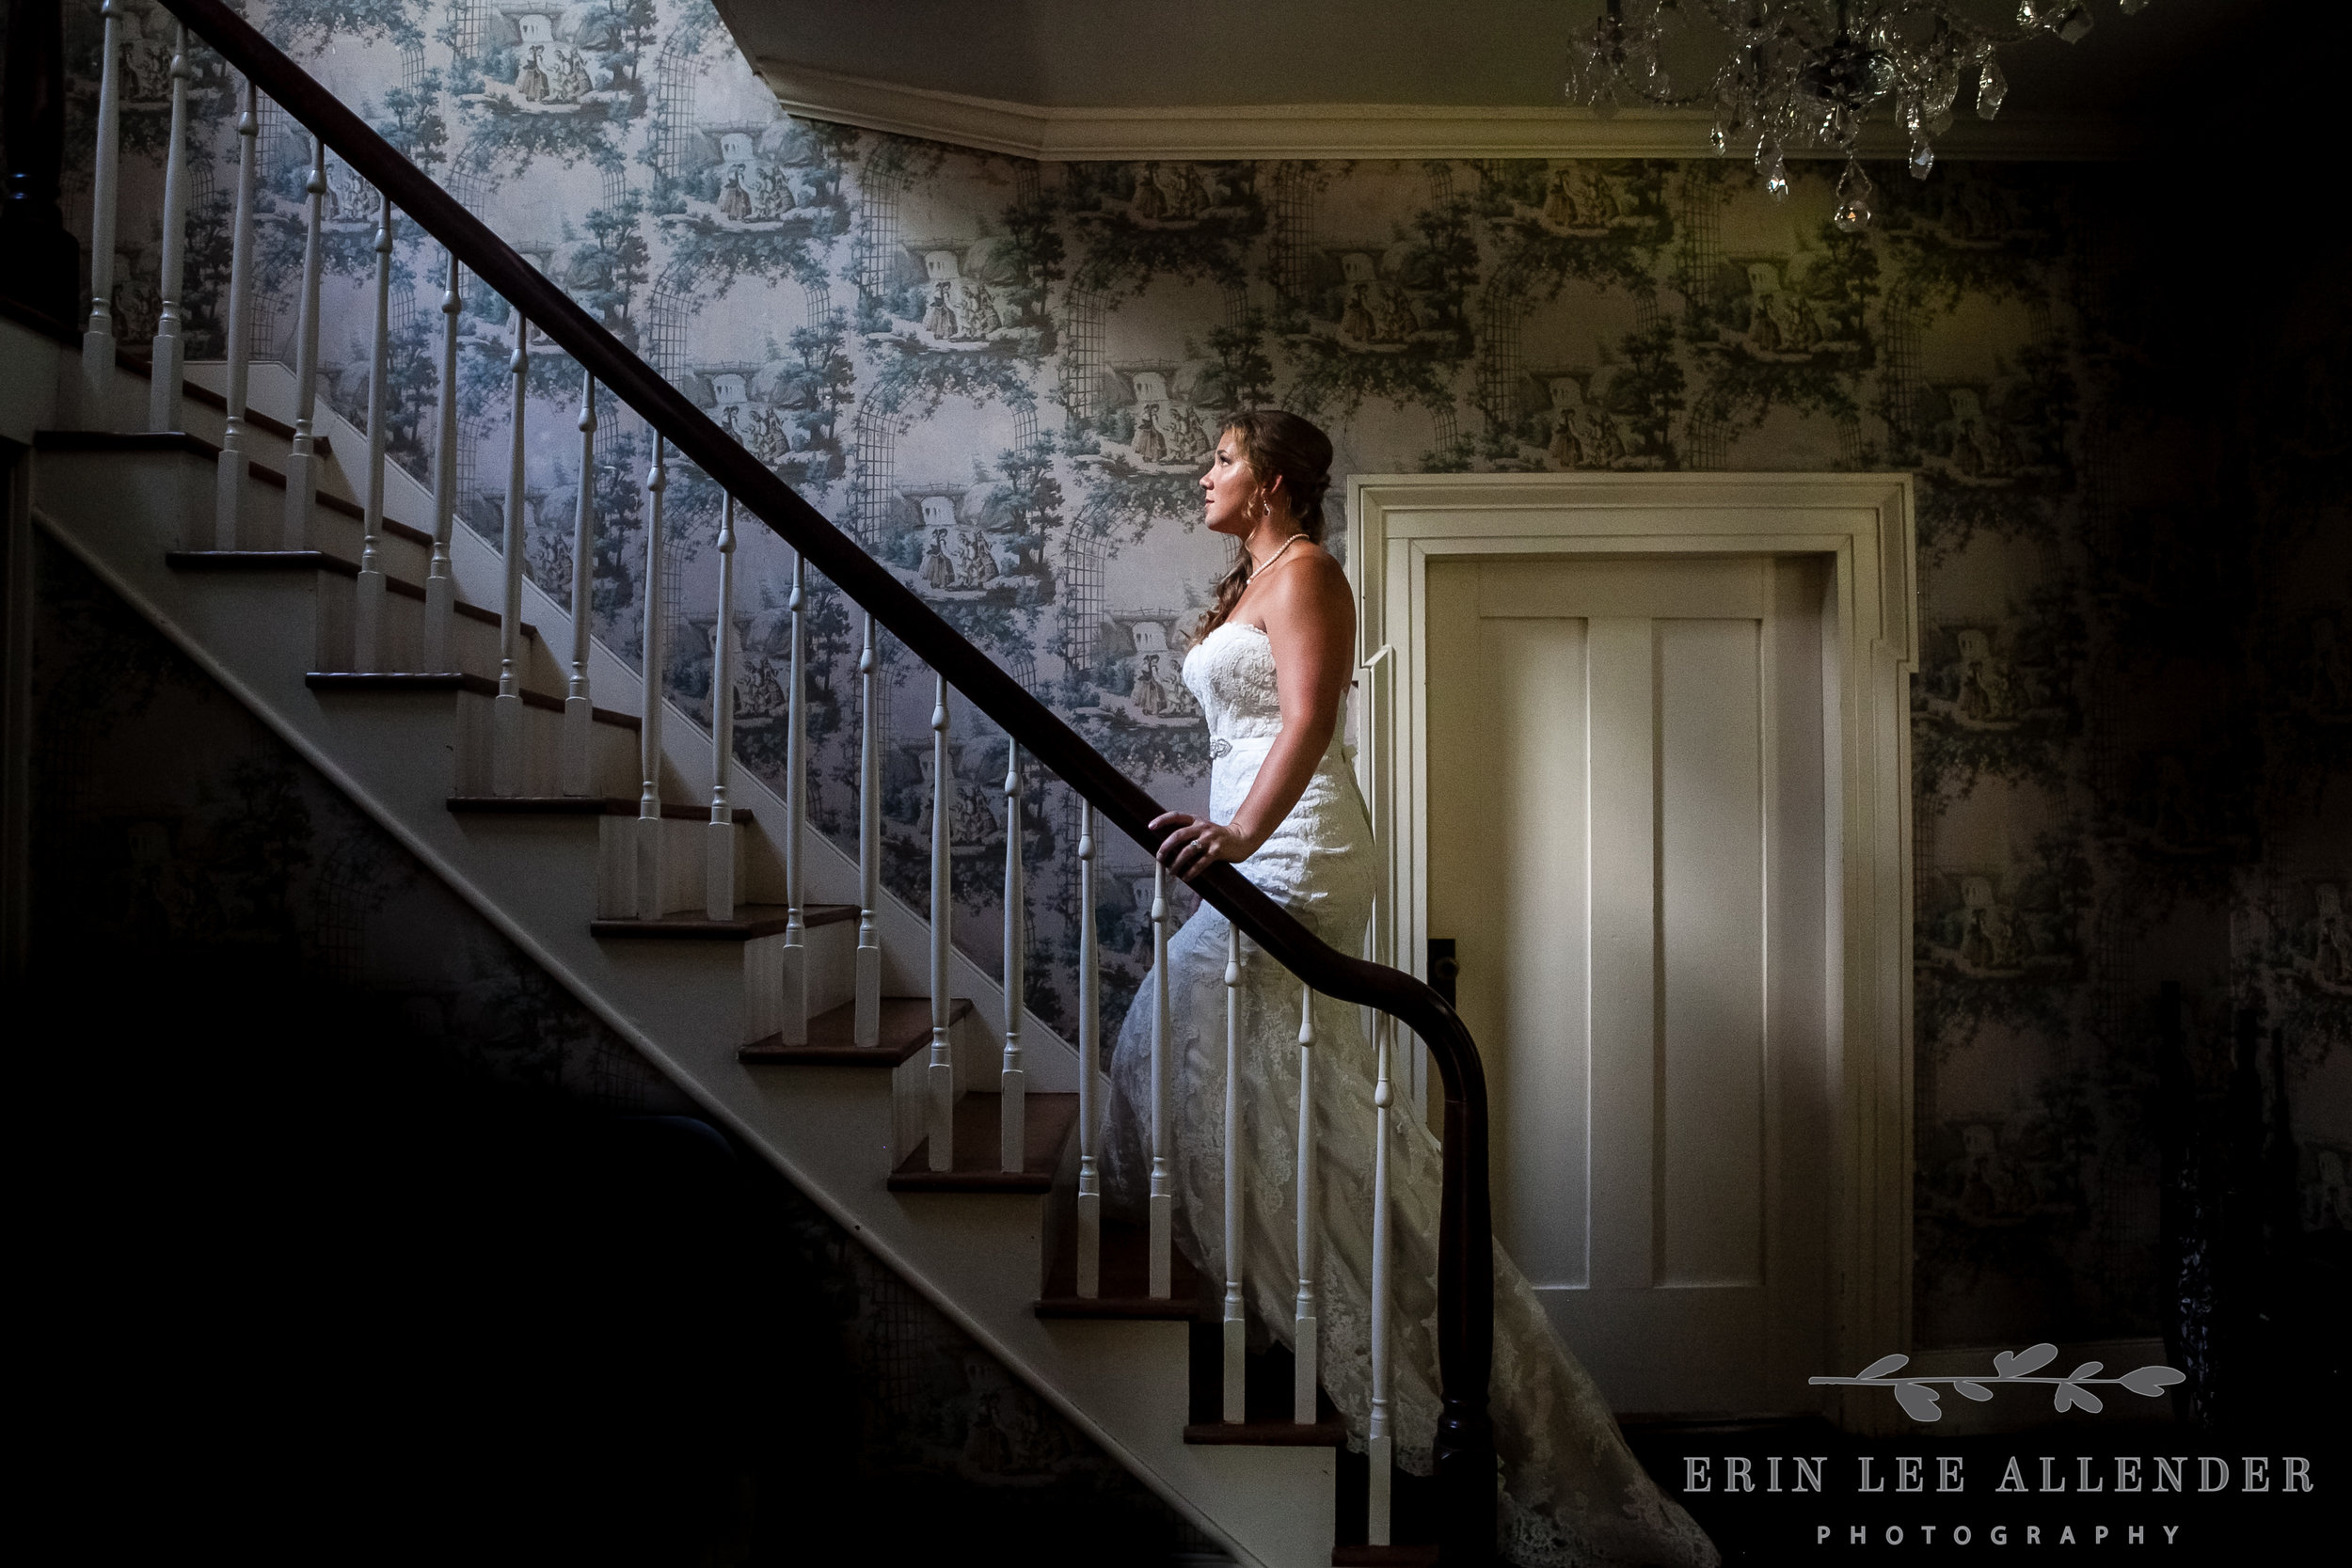 Bride_On_Staircase_With_Light